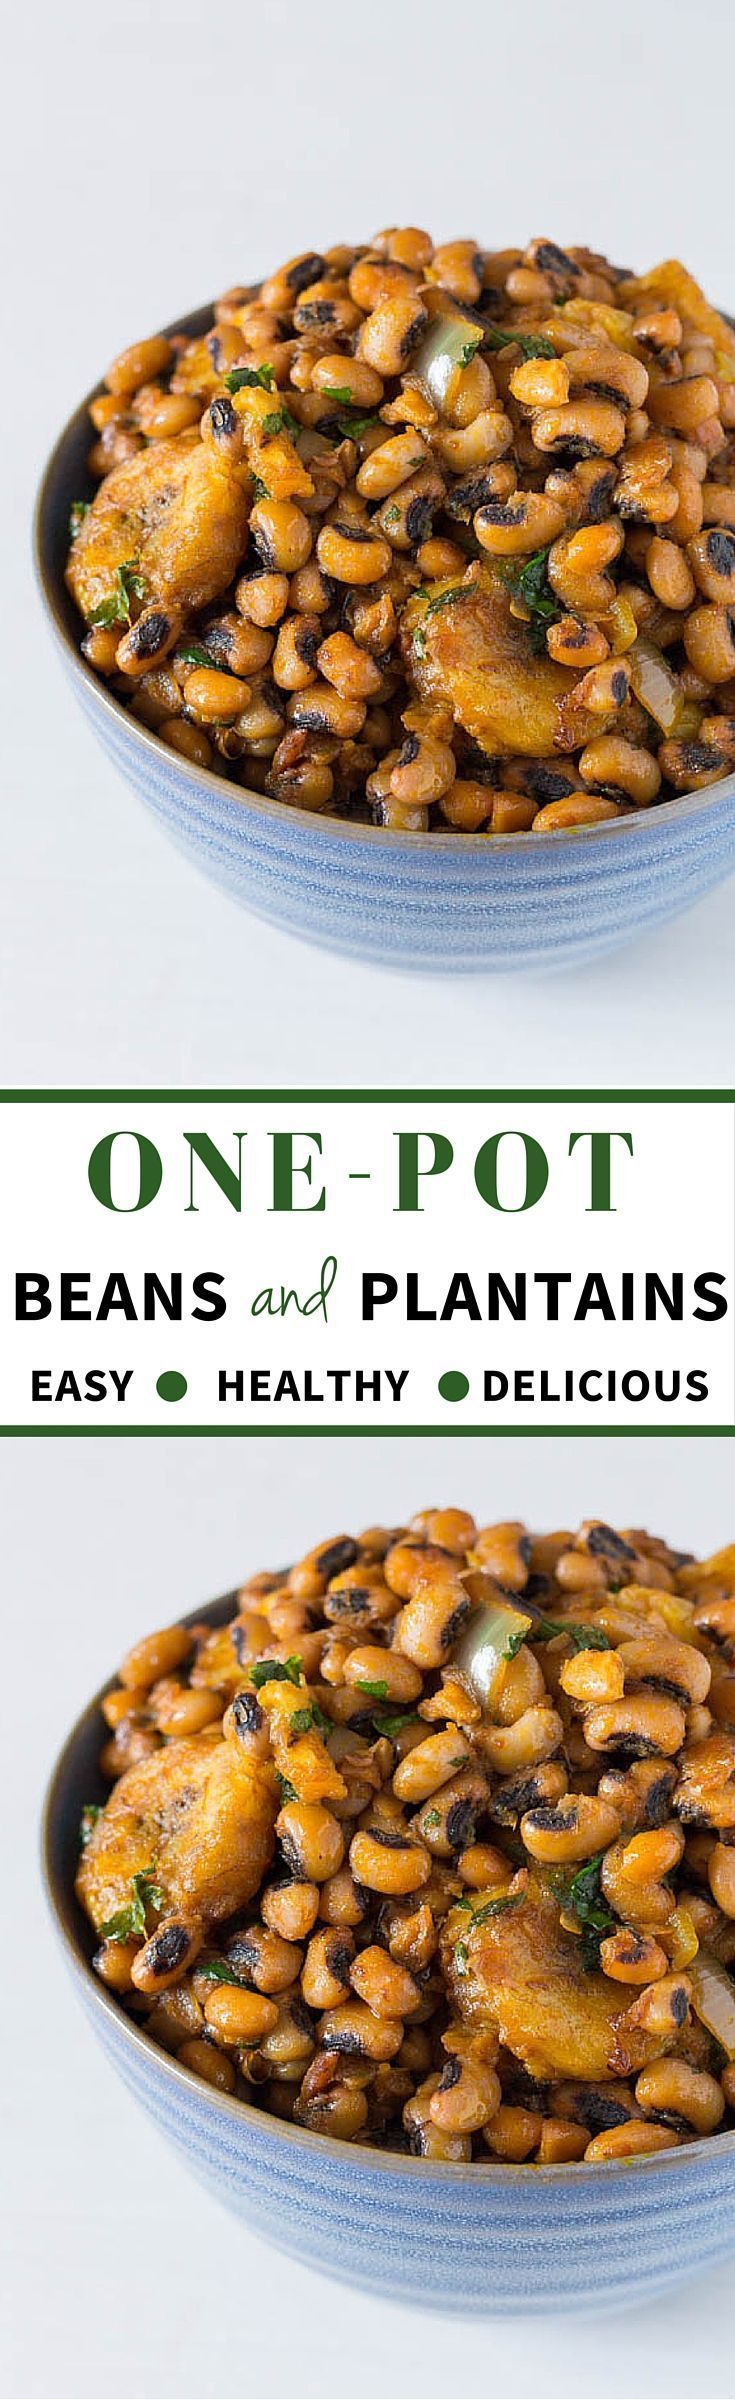 One Pot Beans and Plantains Recipes Recipes From A